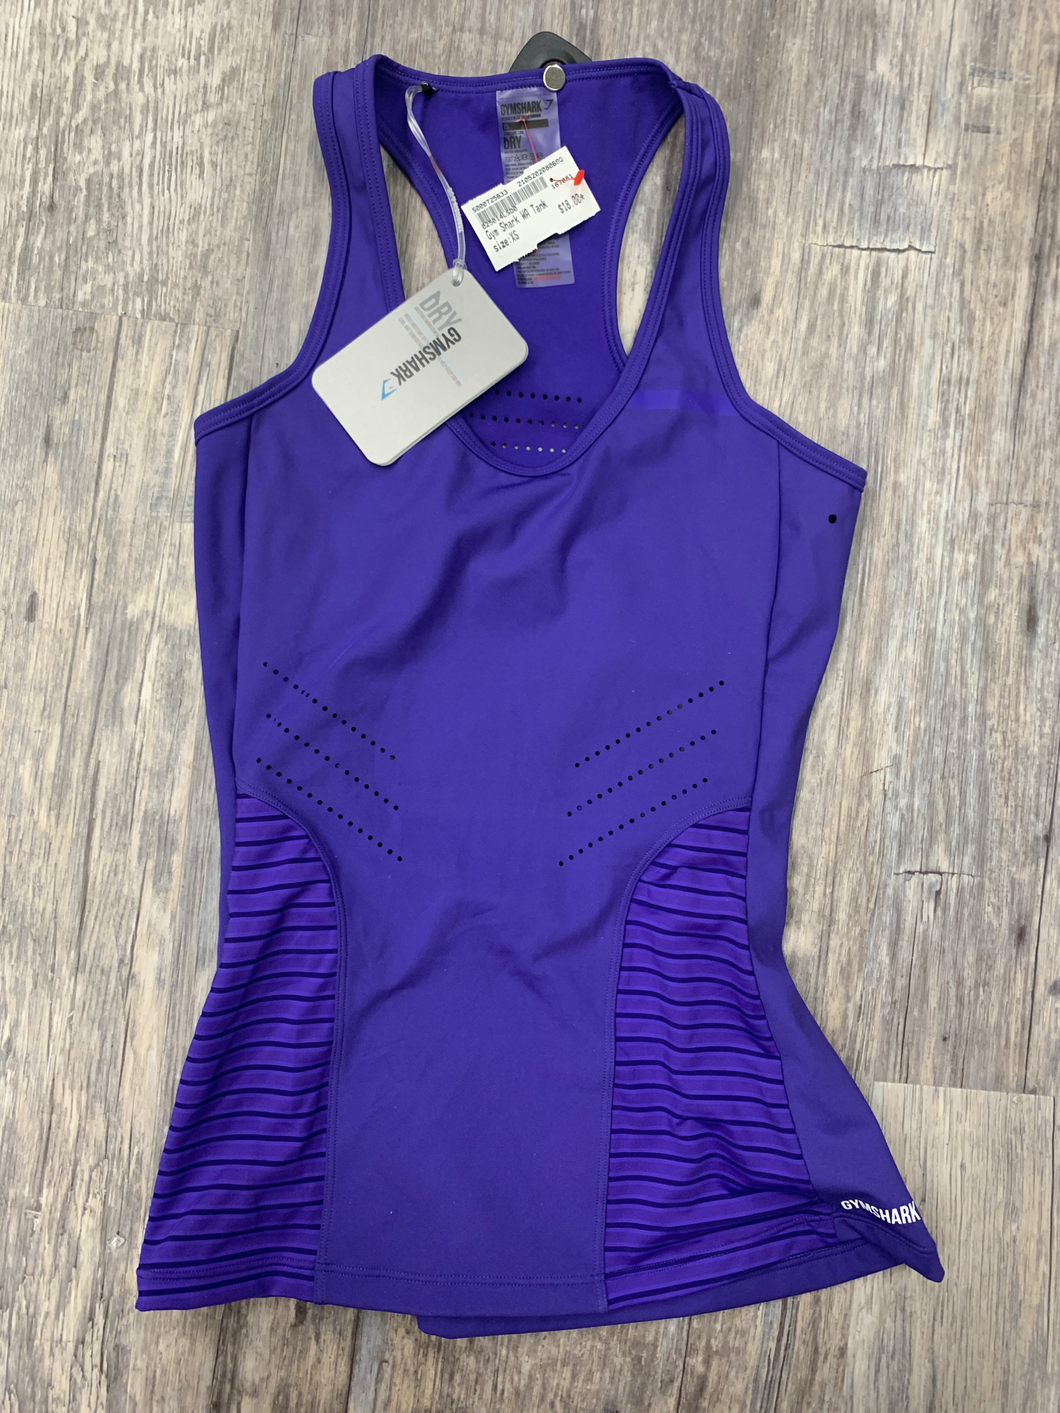 Athletic Top Size Extra Small